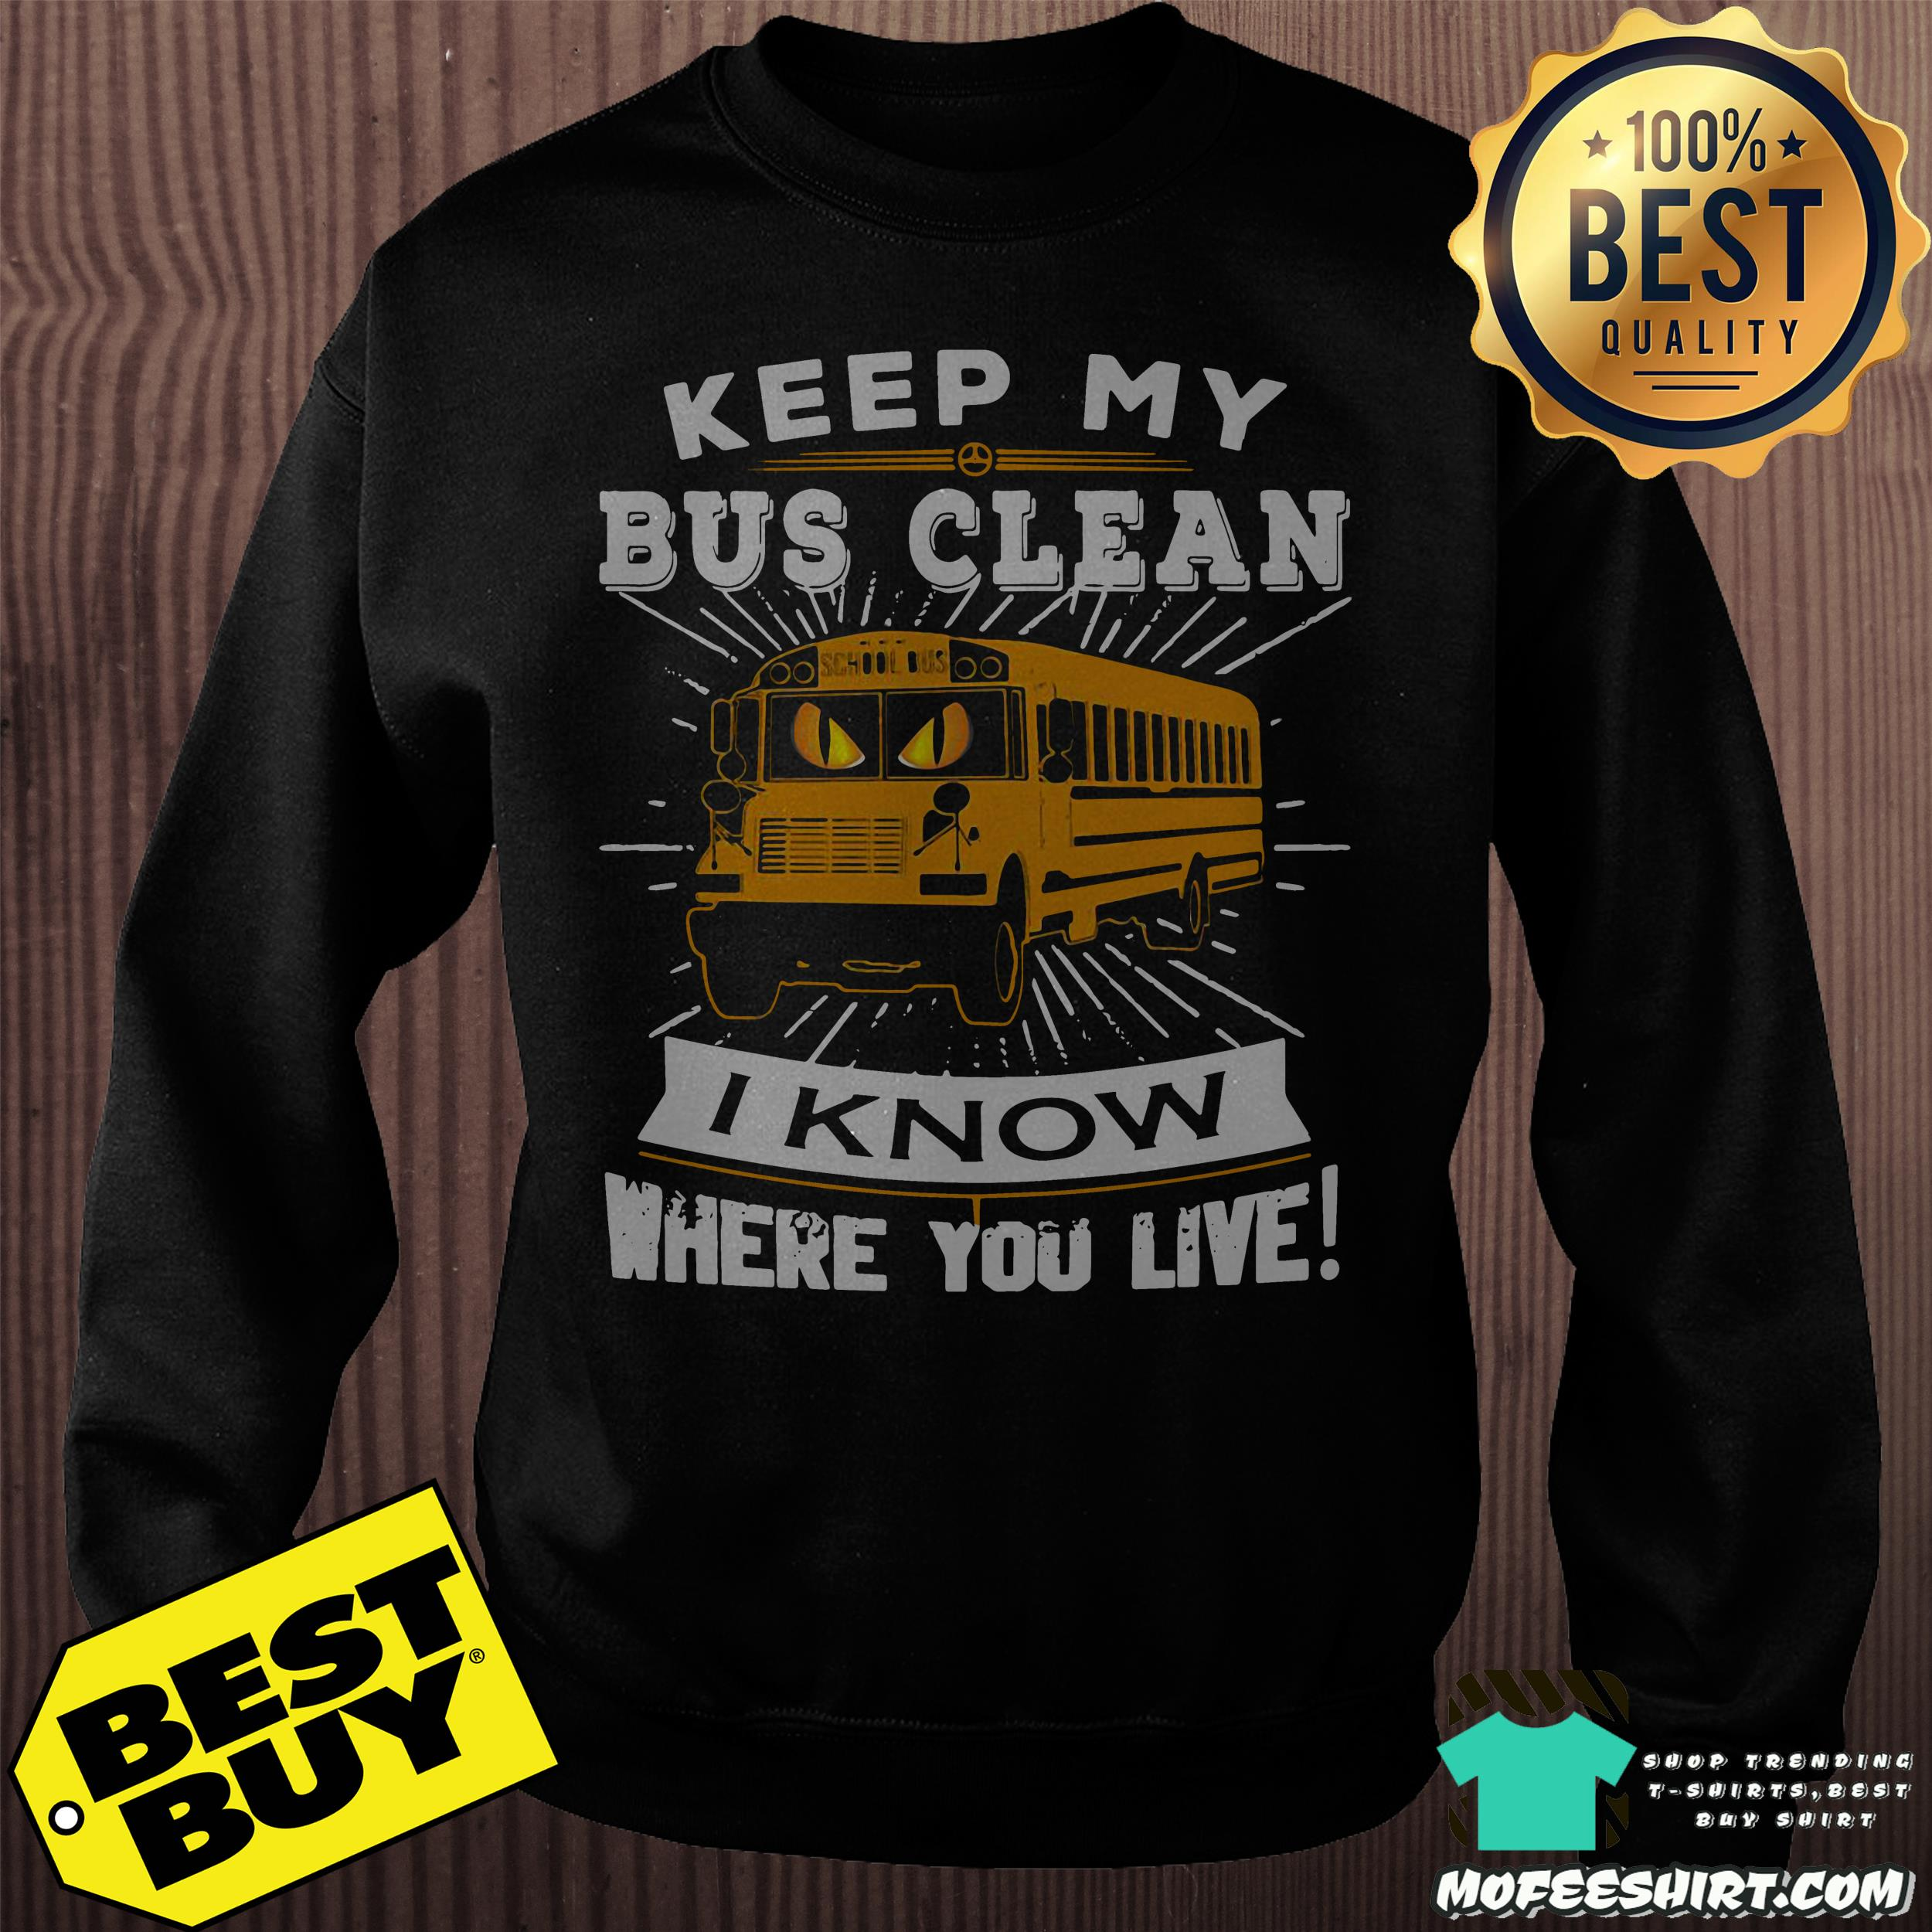 Keep my bus clean I know where you live sweatshirt